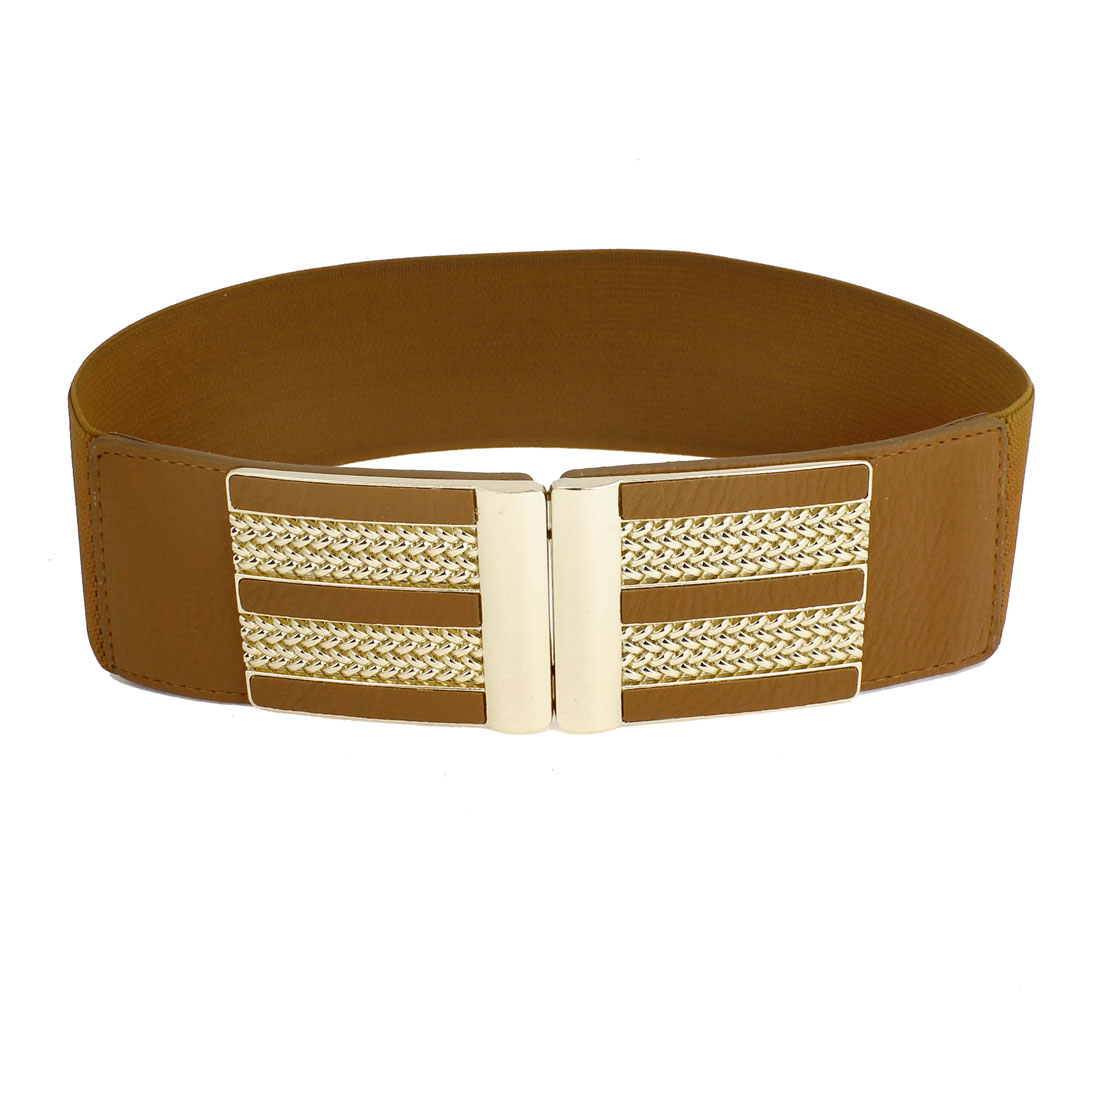 Lady Brown Faux Leather Decor Interlock Buckle Textured Elastic Waist Belt